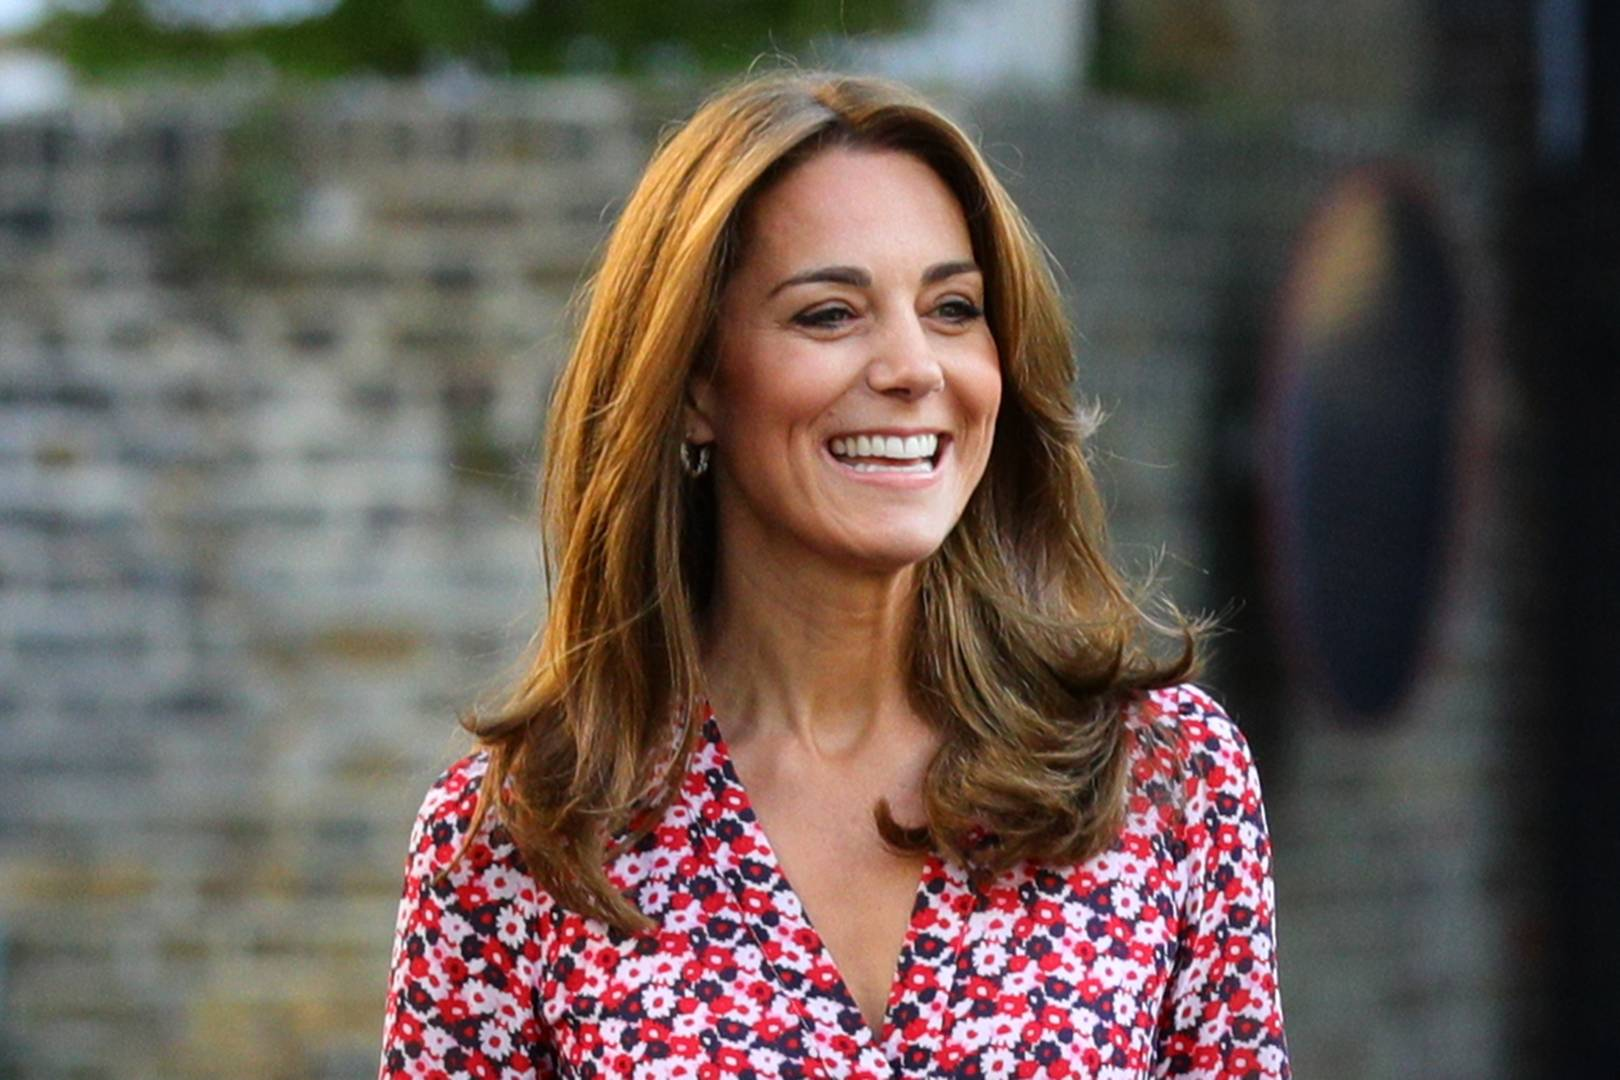 the duchess of cambridge s hair evolution best hairstyles tatler the duchess of cambridge s hair